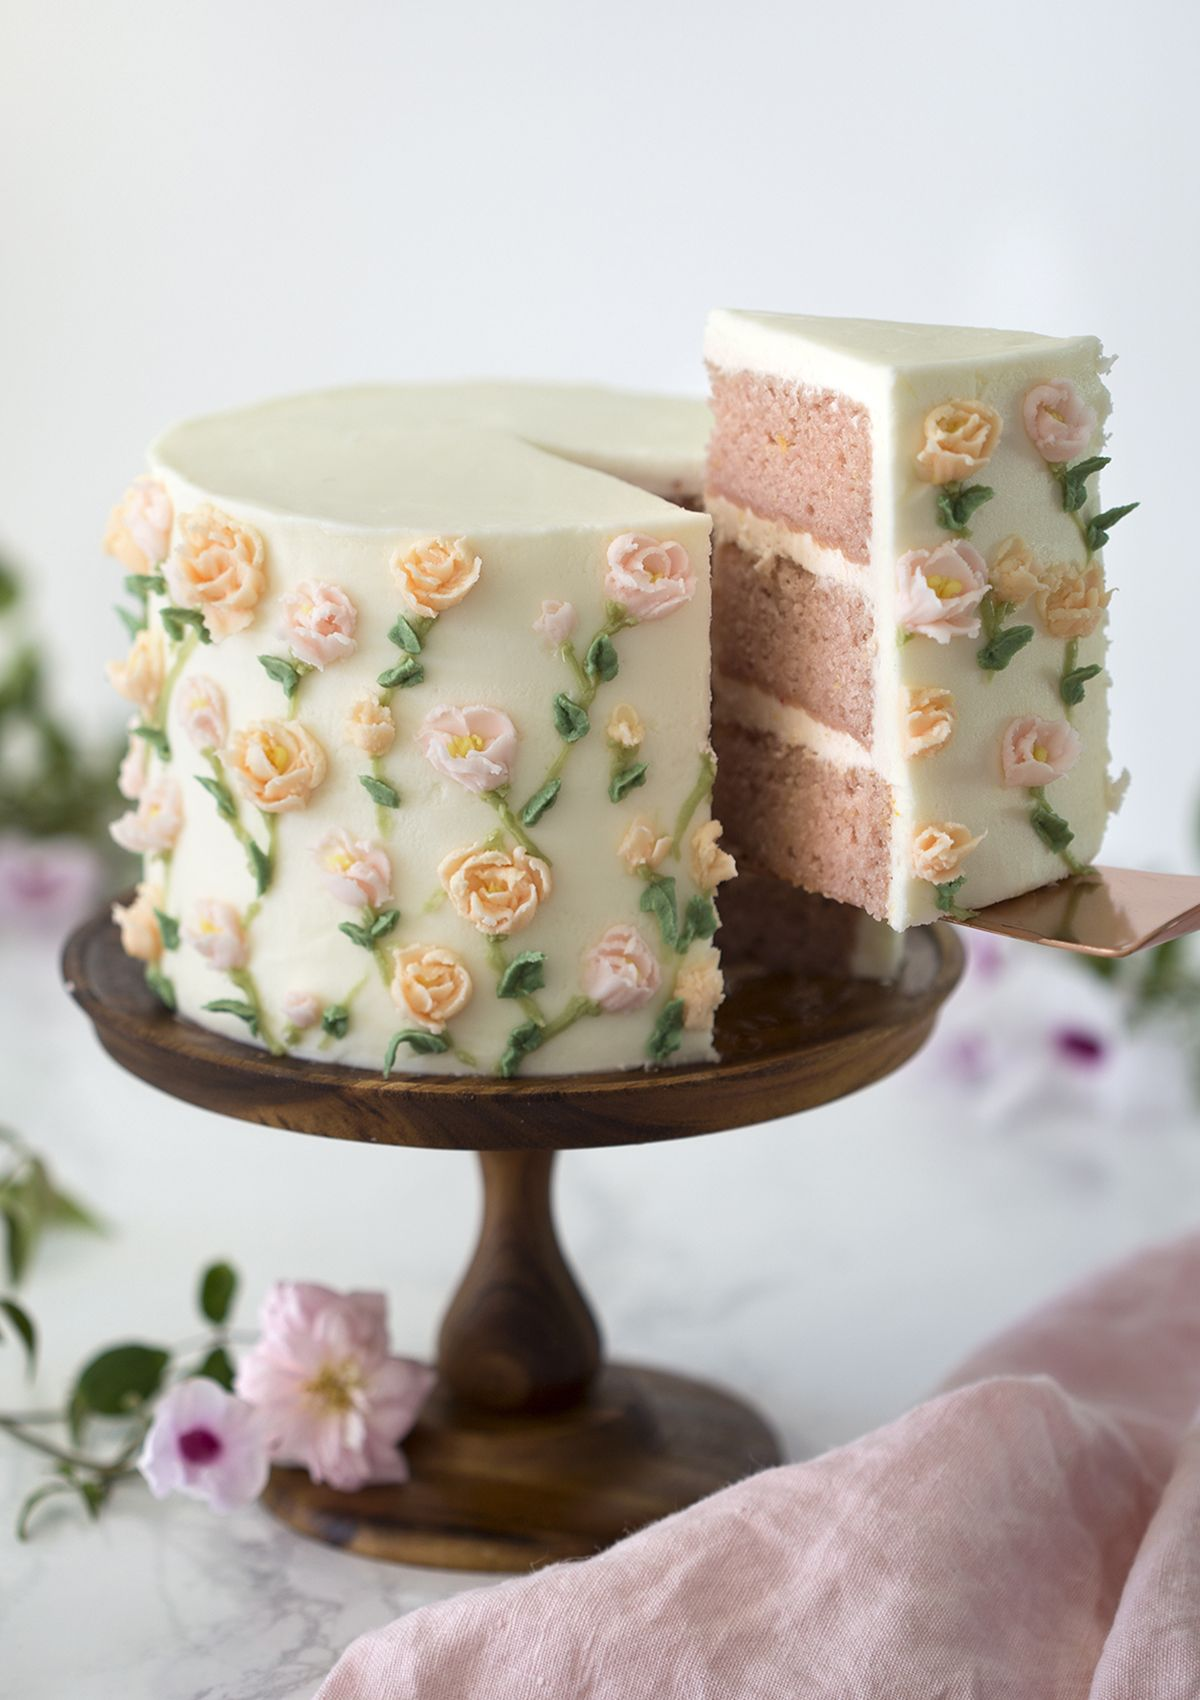 A Moist Strawberry Cake With A Kiss Of Lemon Covered In Delicate